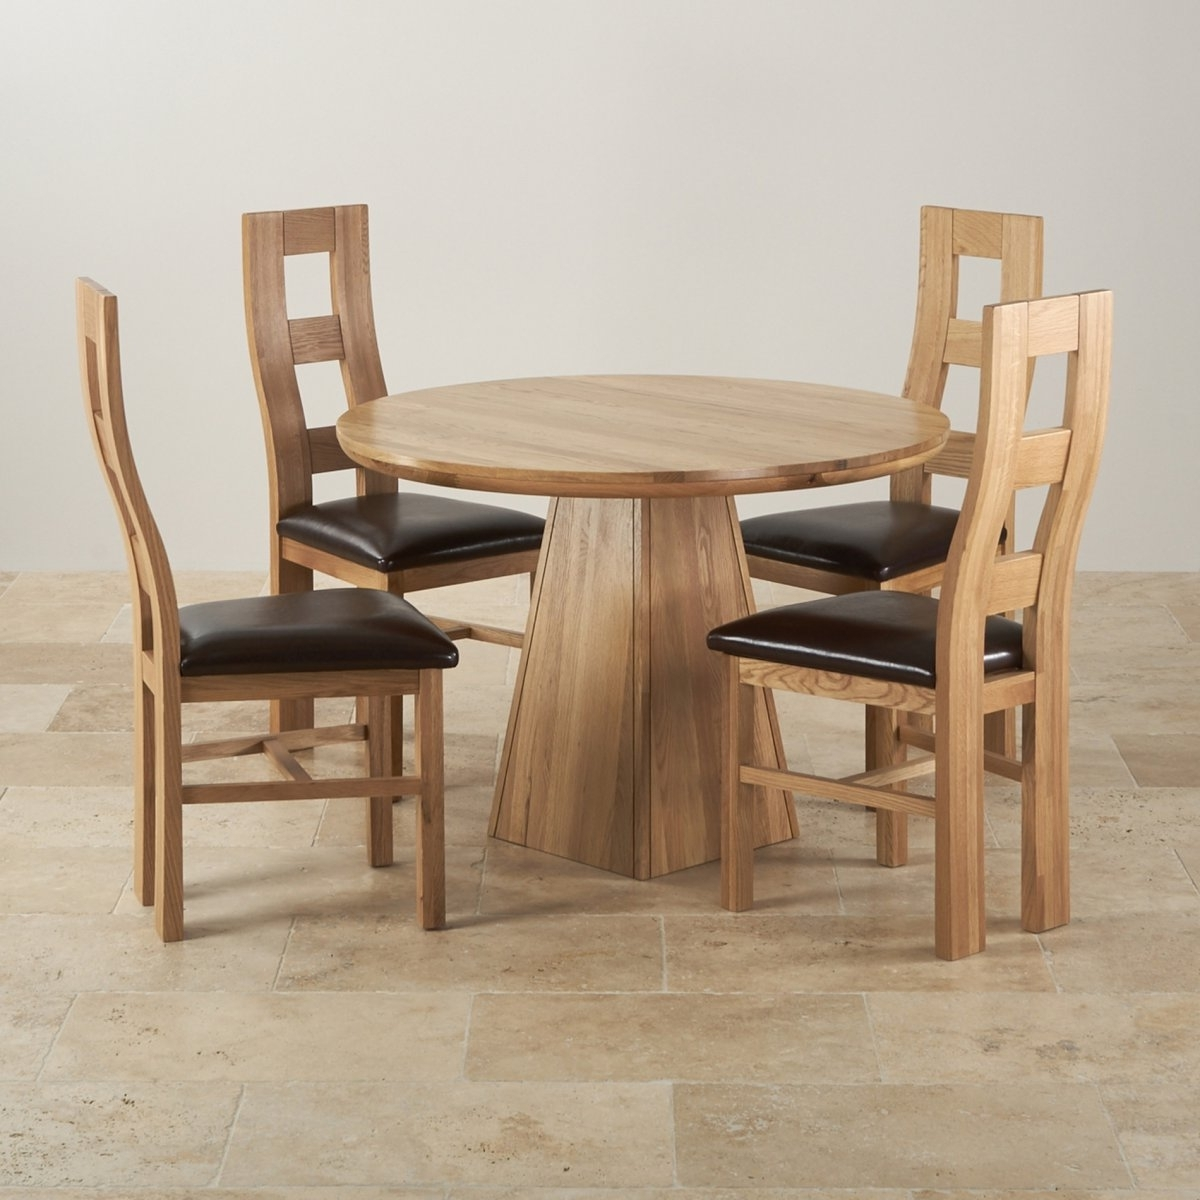 Round Oak Dining Tables And Chairs Throughout Favorite Provence Solid Oak Dining Set 3Ft 7Quot; Table With 4 Chairs, Dining (View 6 of 25)